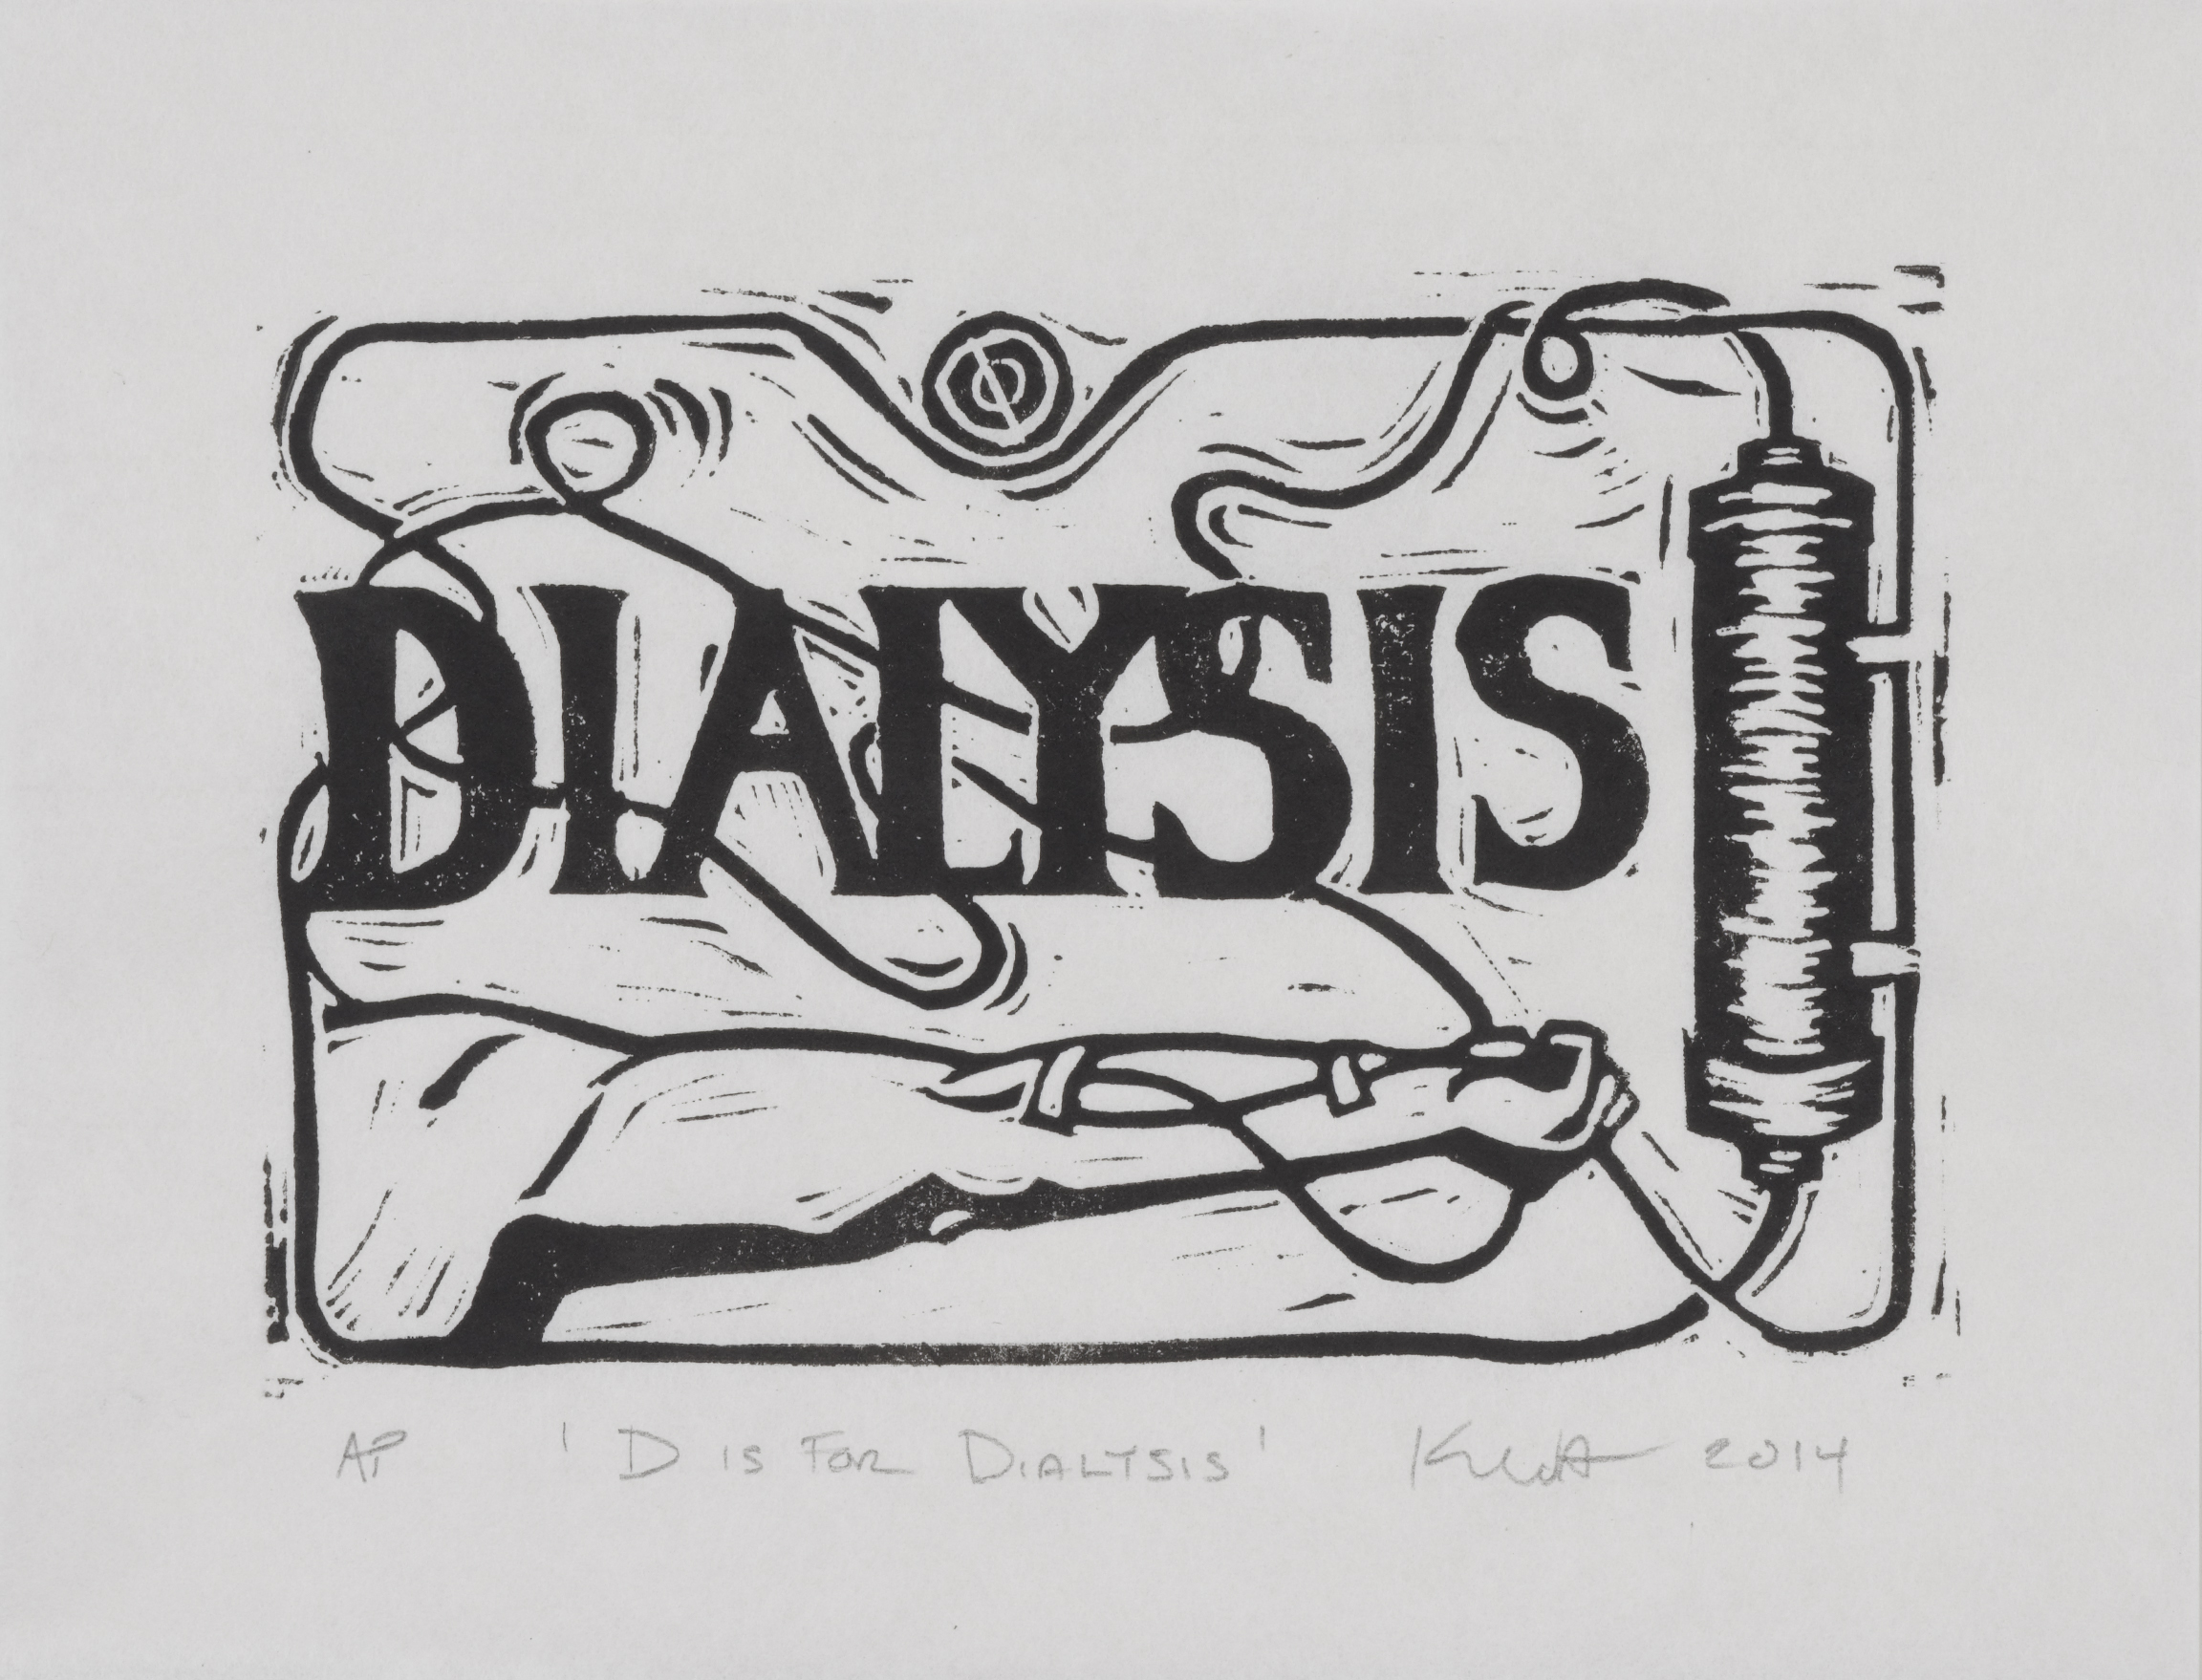 D is for Dialysis